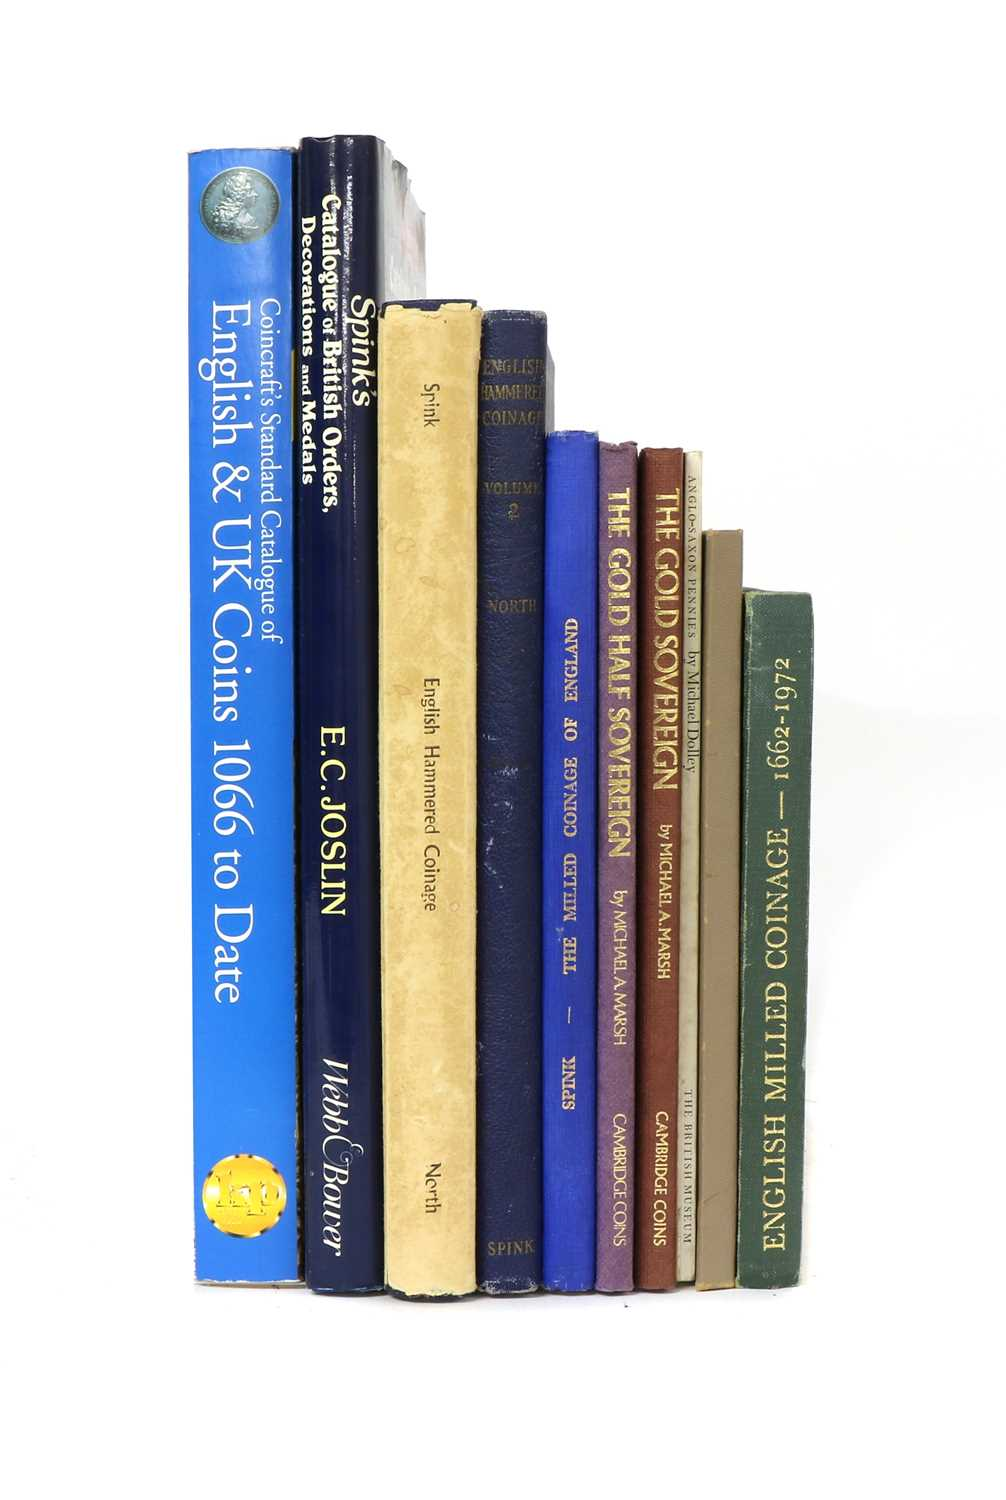 Ten reference books on coins